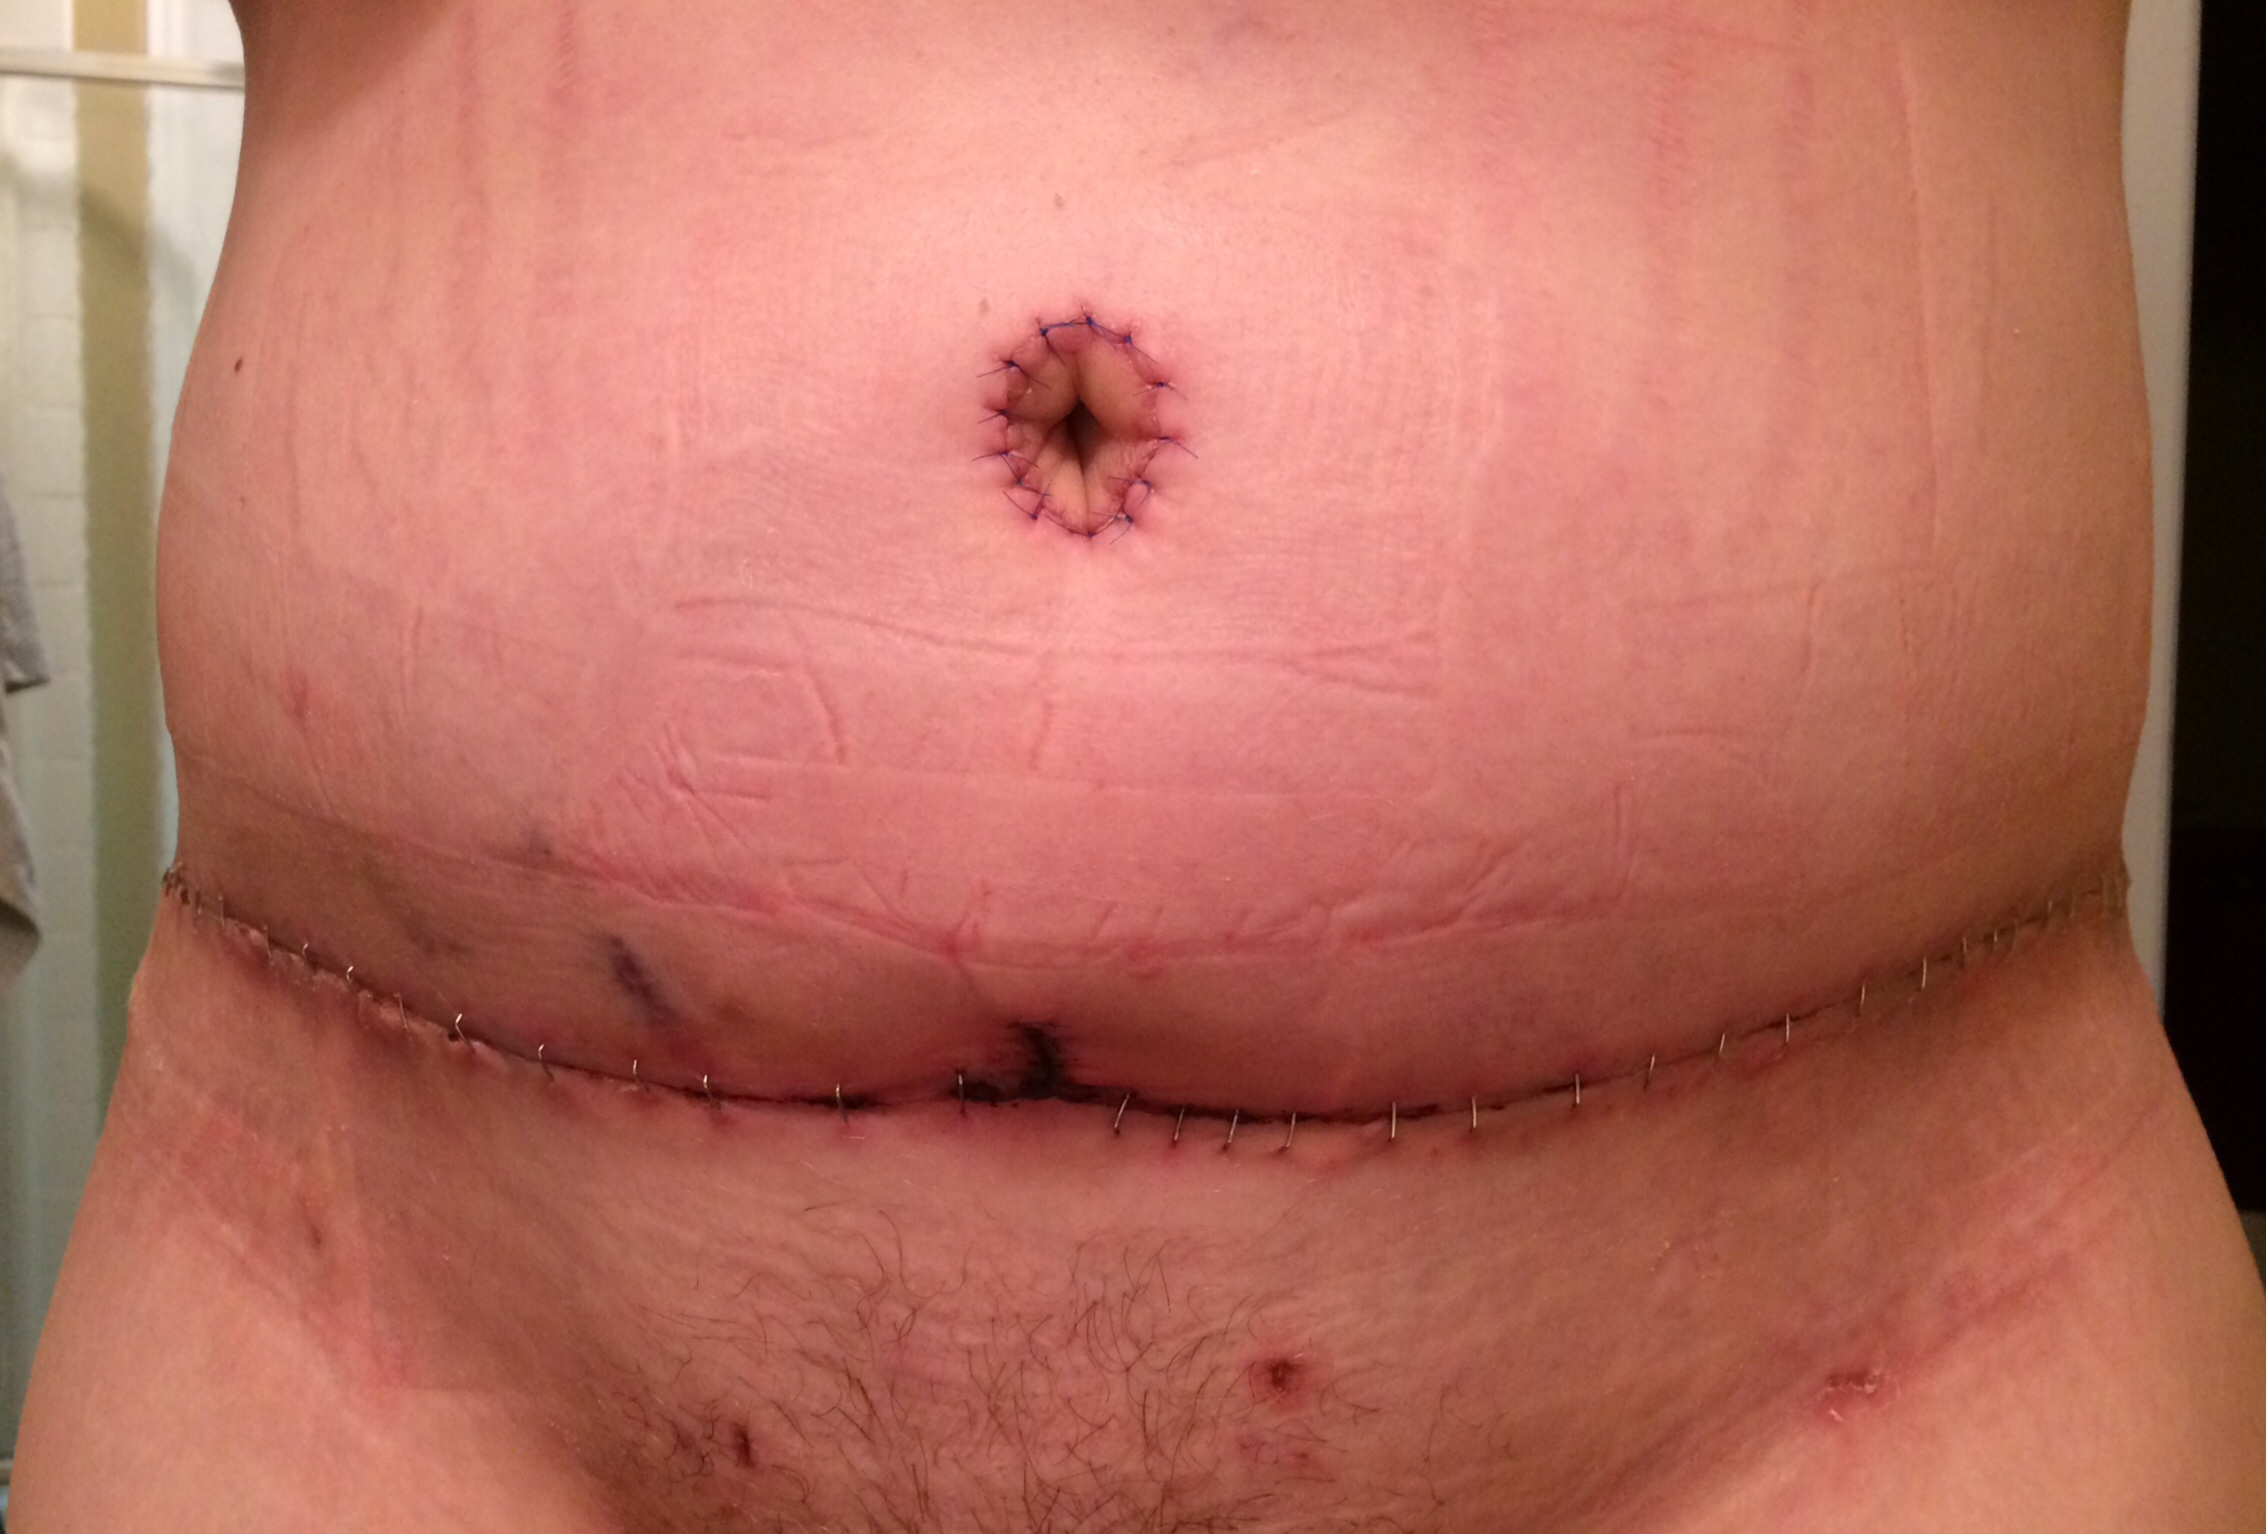 Day 10 incision